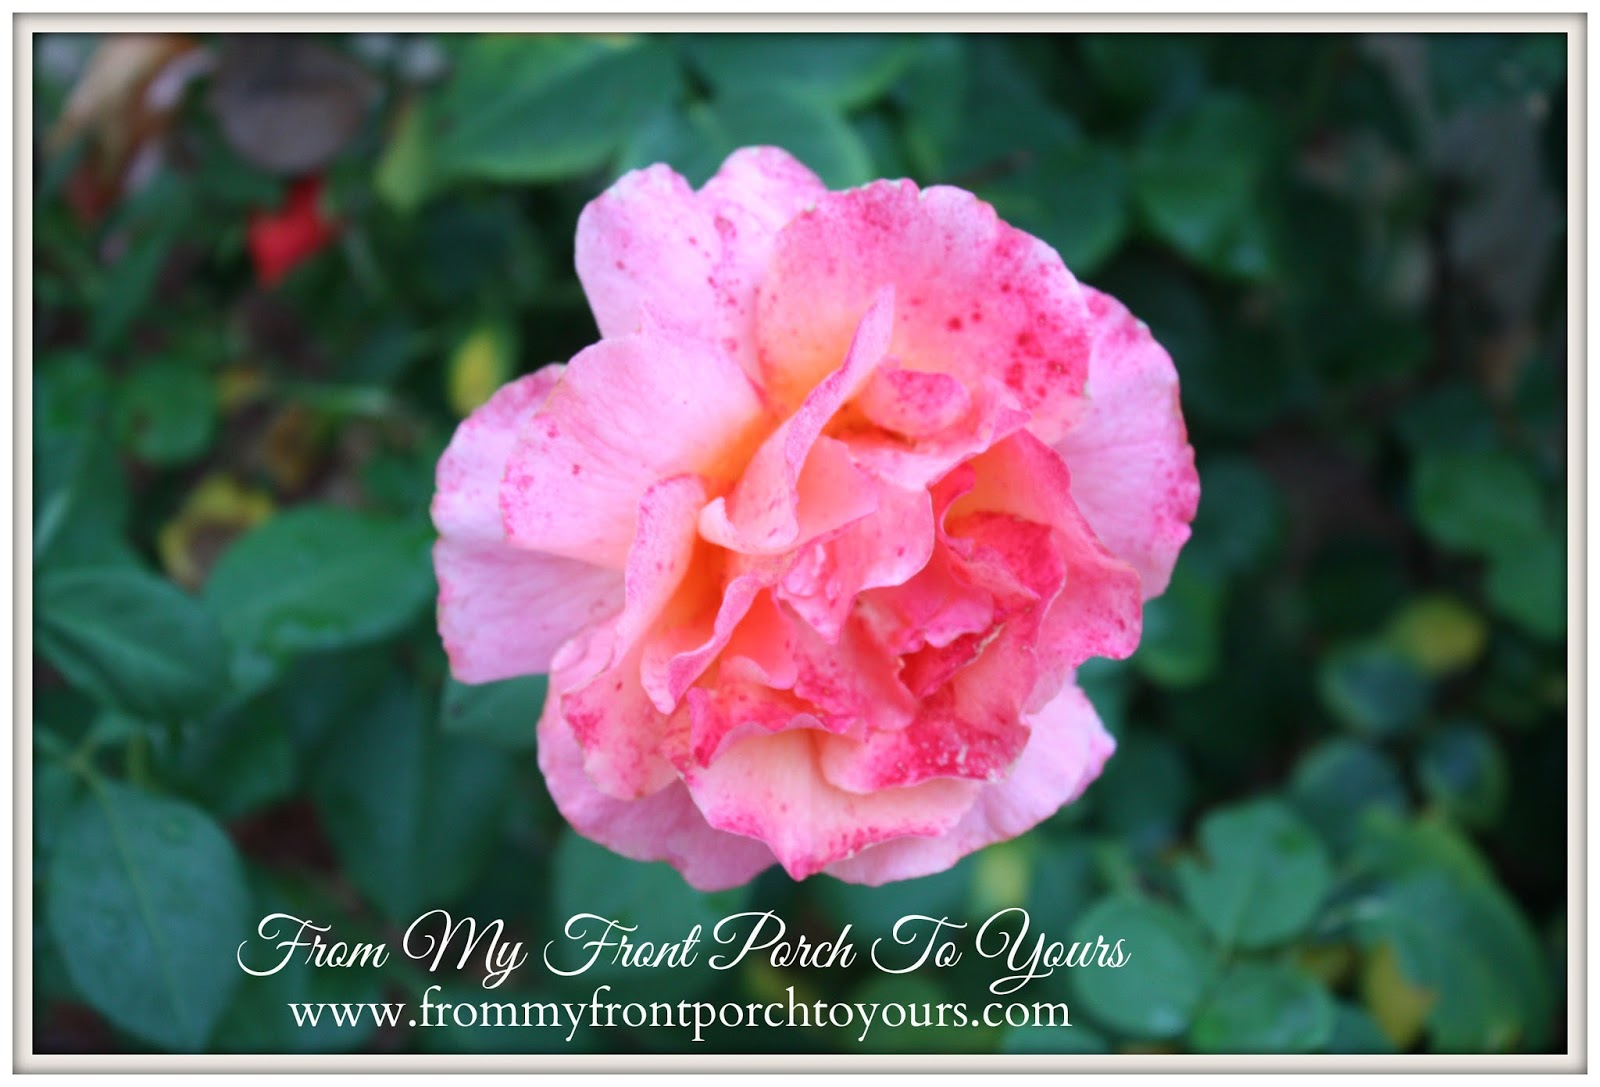 From My Front Porch To Yours- Flower Garden Rose